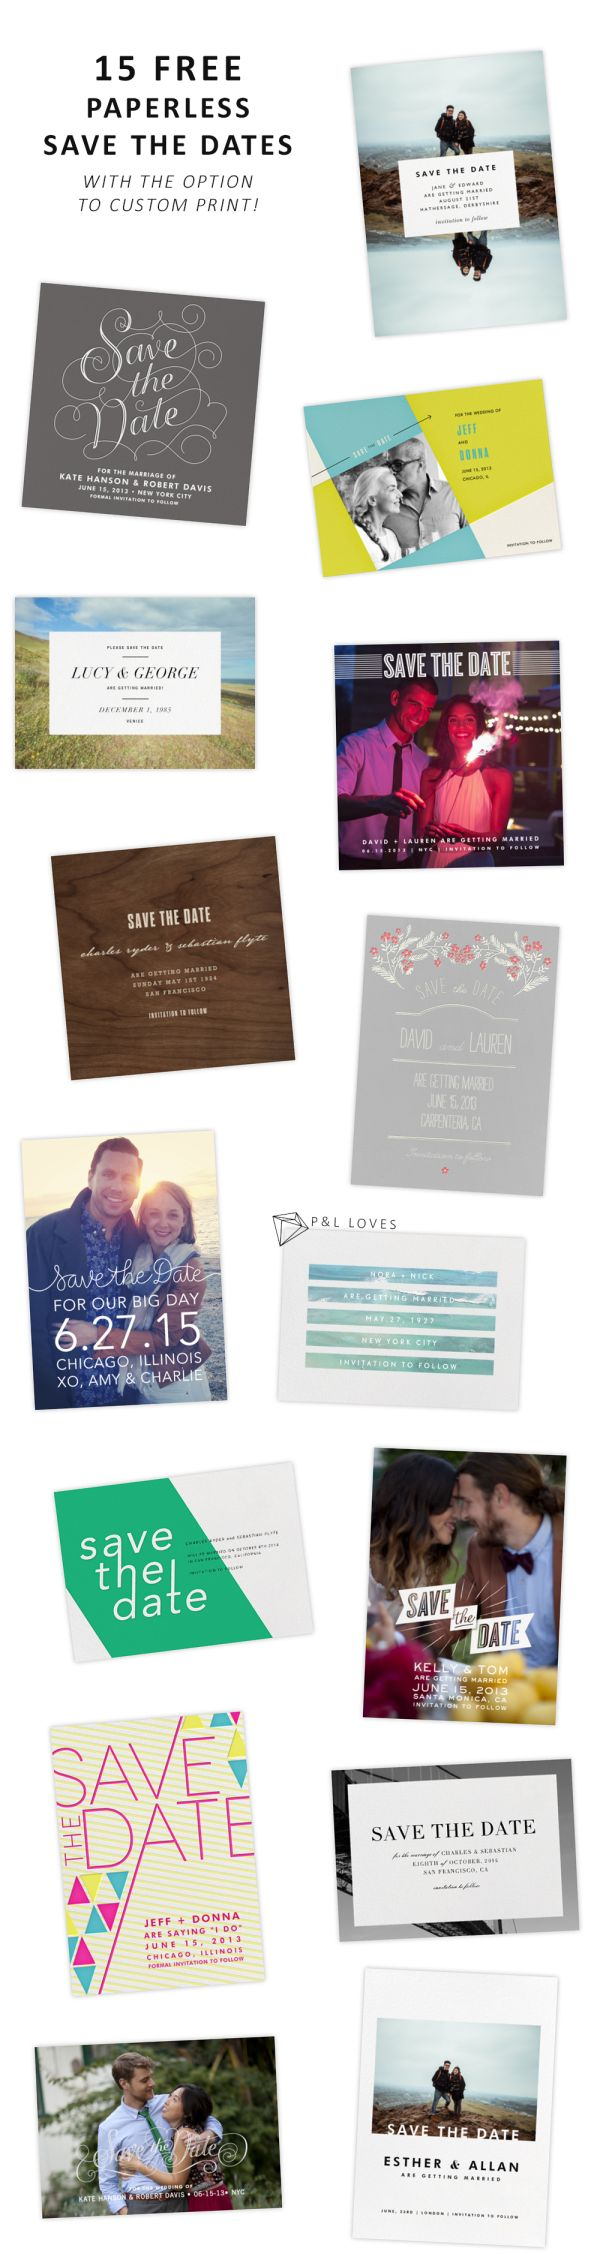 15 FREE Wedding Save the Dates from Paperless Post #invitation paperandlace.com                                                                                                                                                                                 More